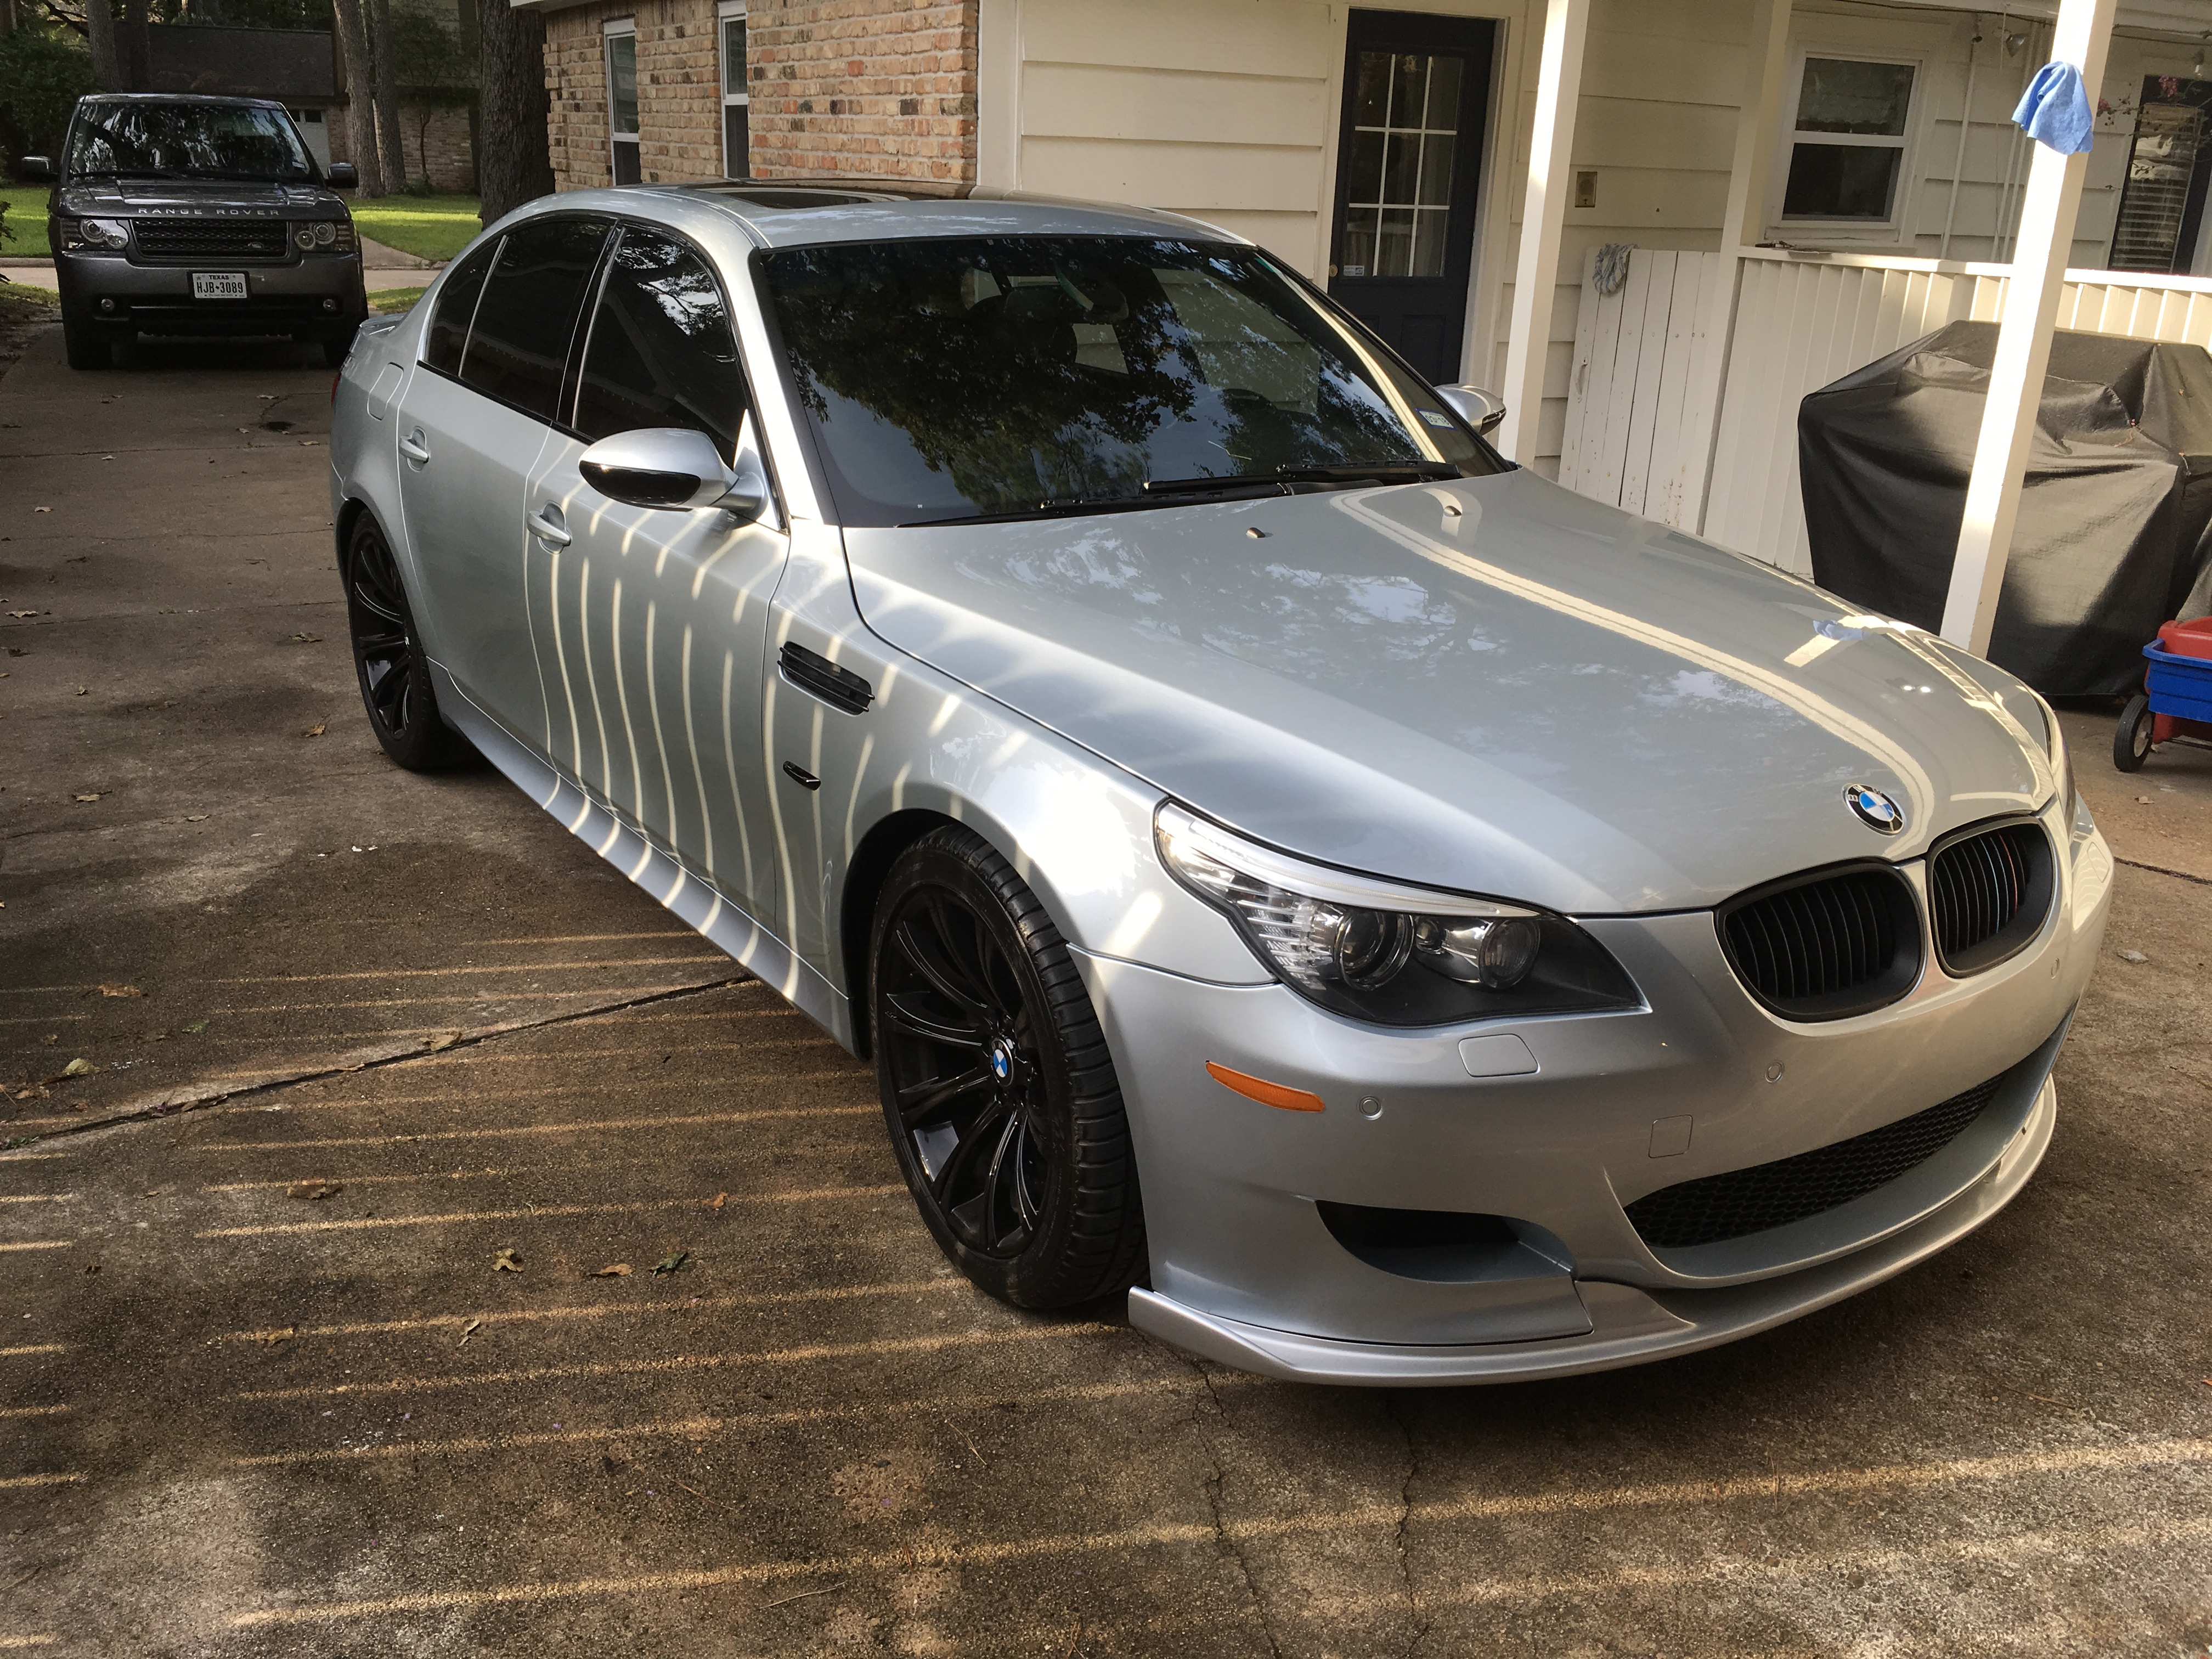 E63 0310 For Sale 2008 m5 for sale  with new engine  BMW M5